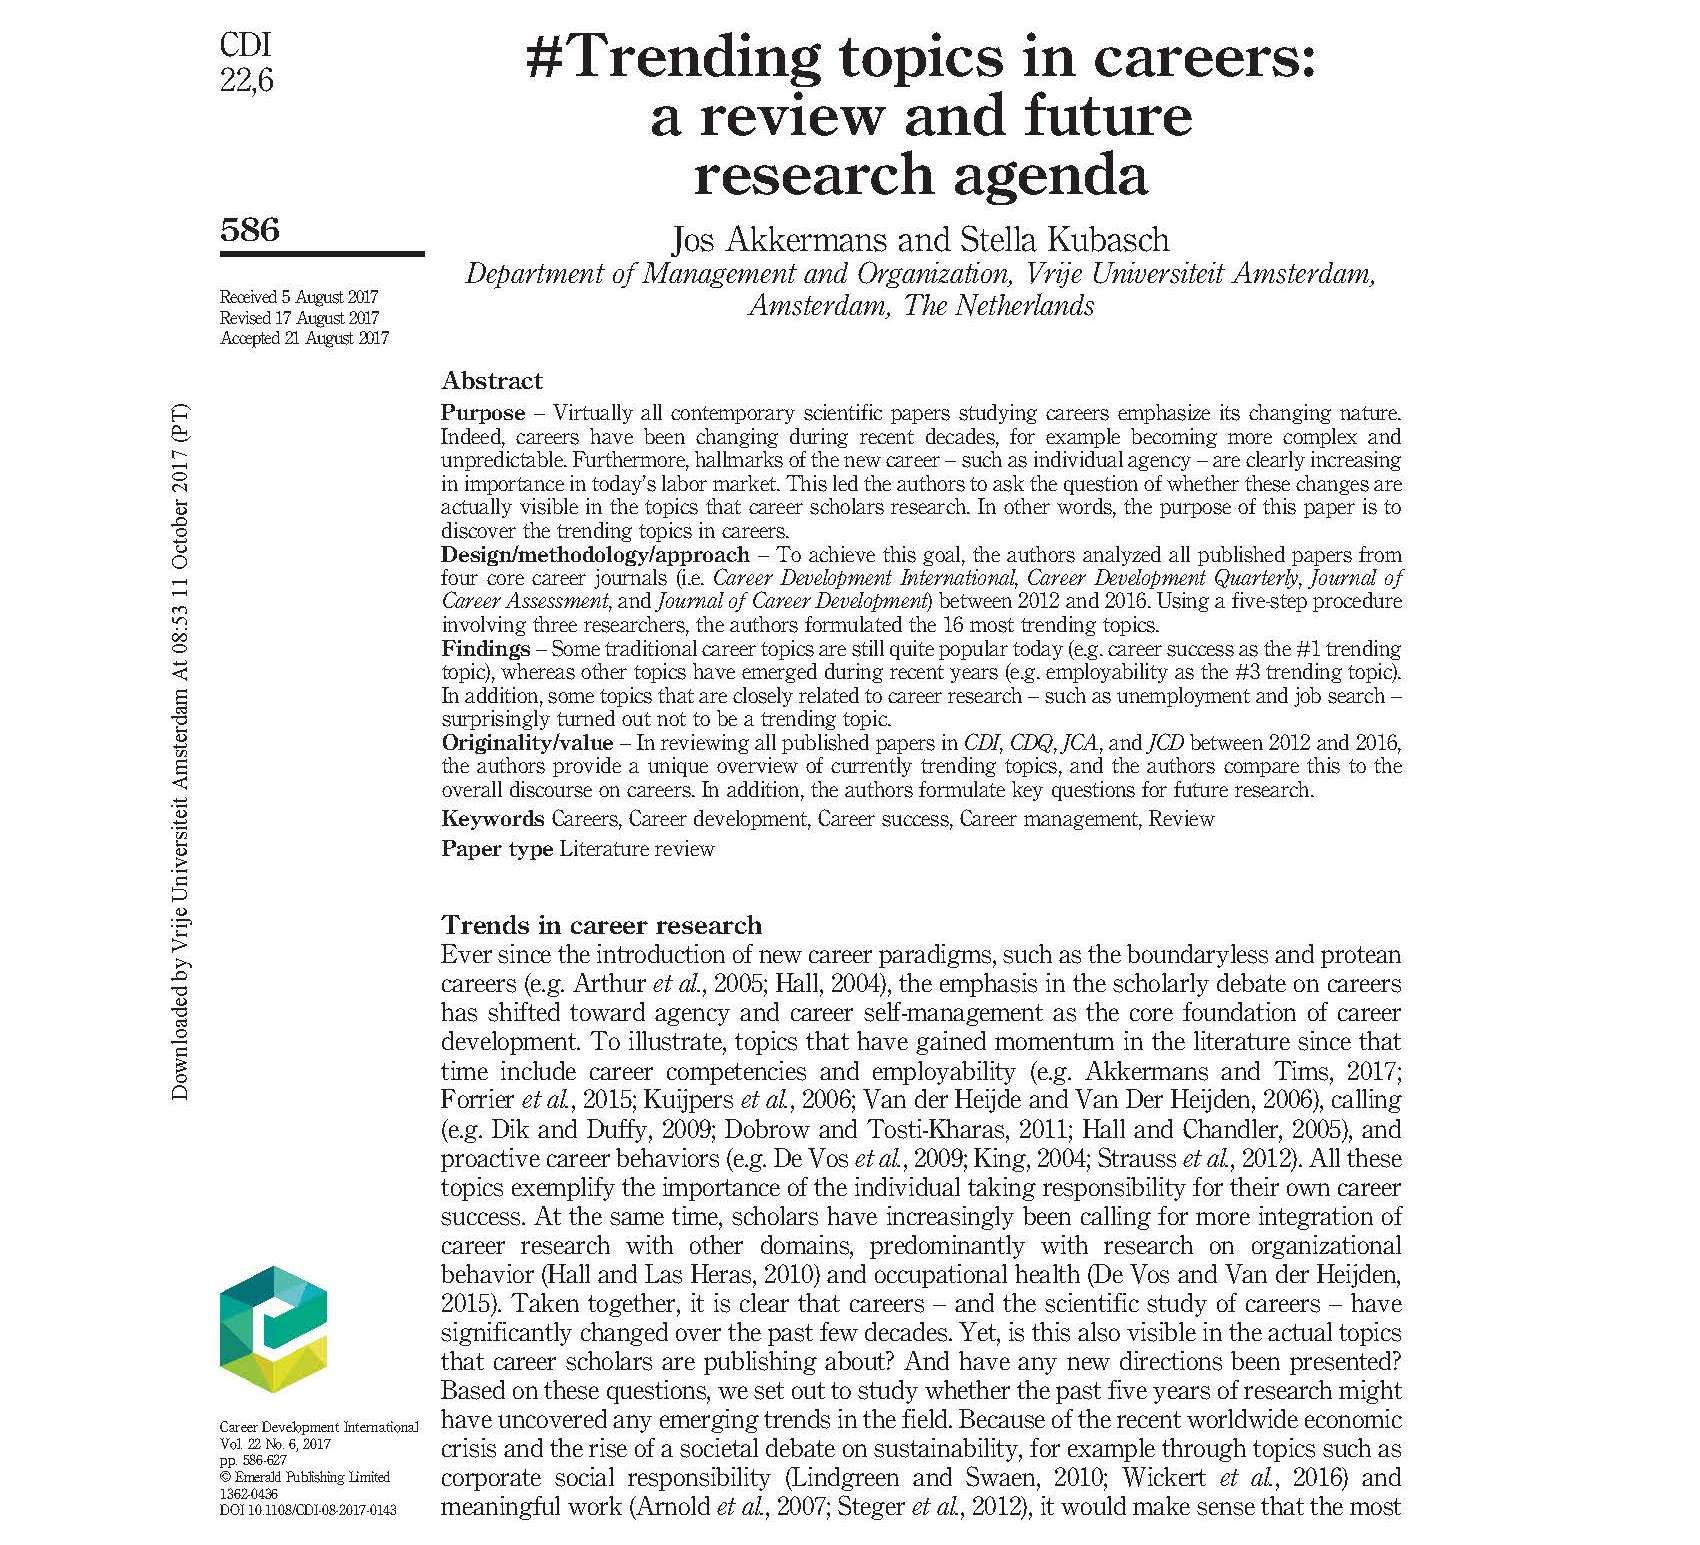 022 59e096d33a29650001209782 1620 20akkermans202620kubasch20201720 20trending20topics20in20careers Research Paper Topics For Impressive Papers High School Students In The Philippines Elementary Education Good History Full